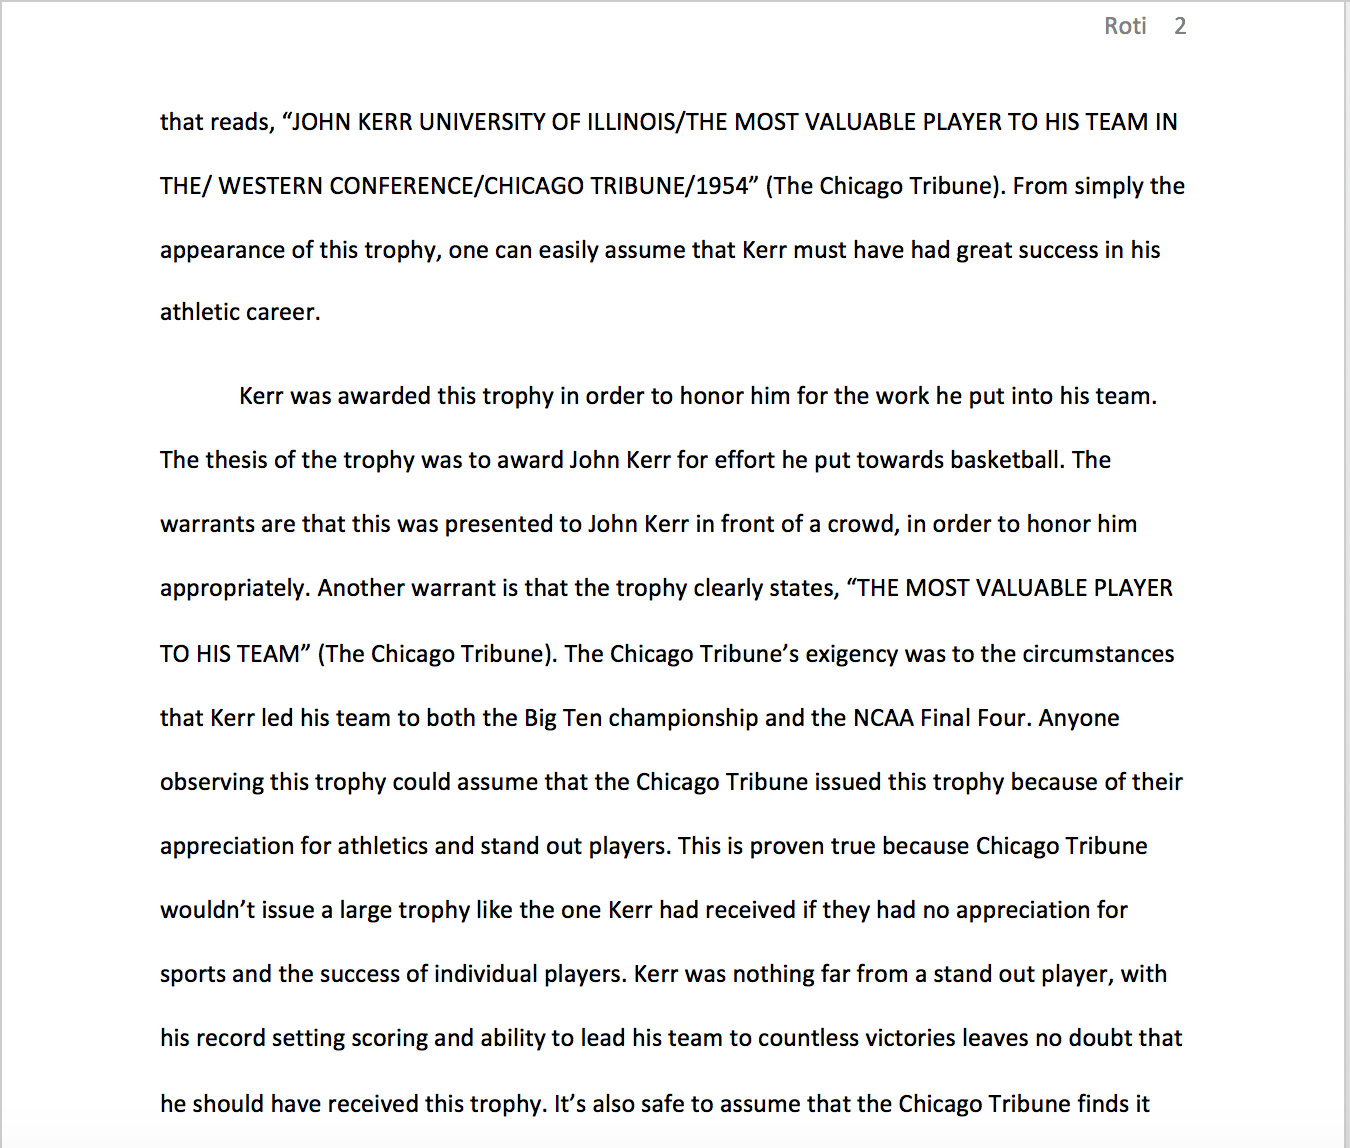 024 Essay Example Screen Shot At Pm Incredible Uiuc University Of Illinois Samples Examples Help Full